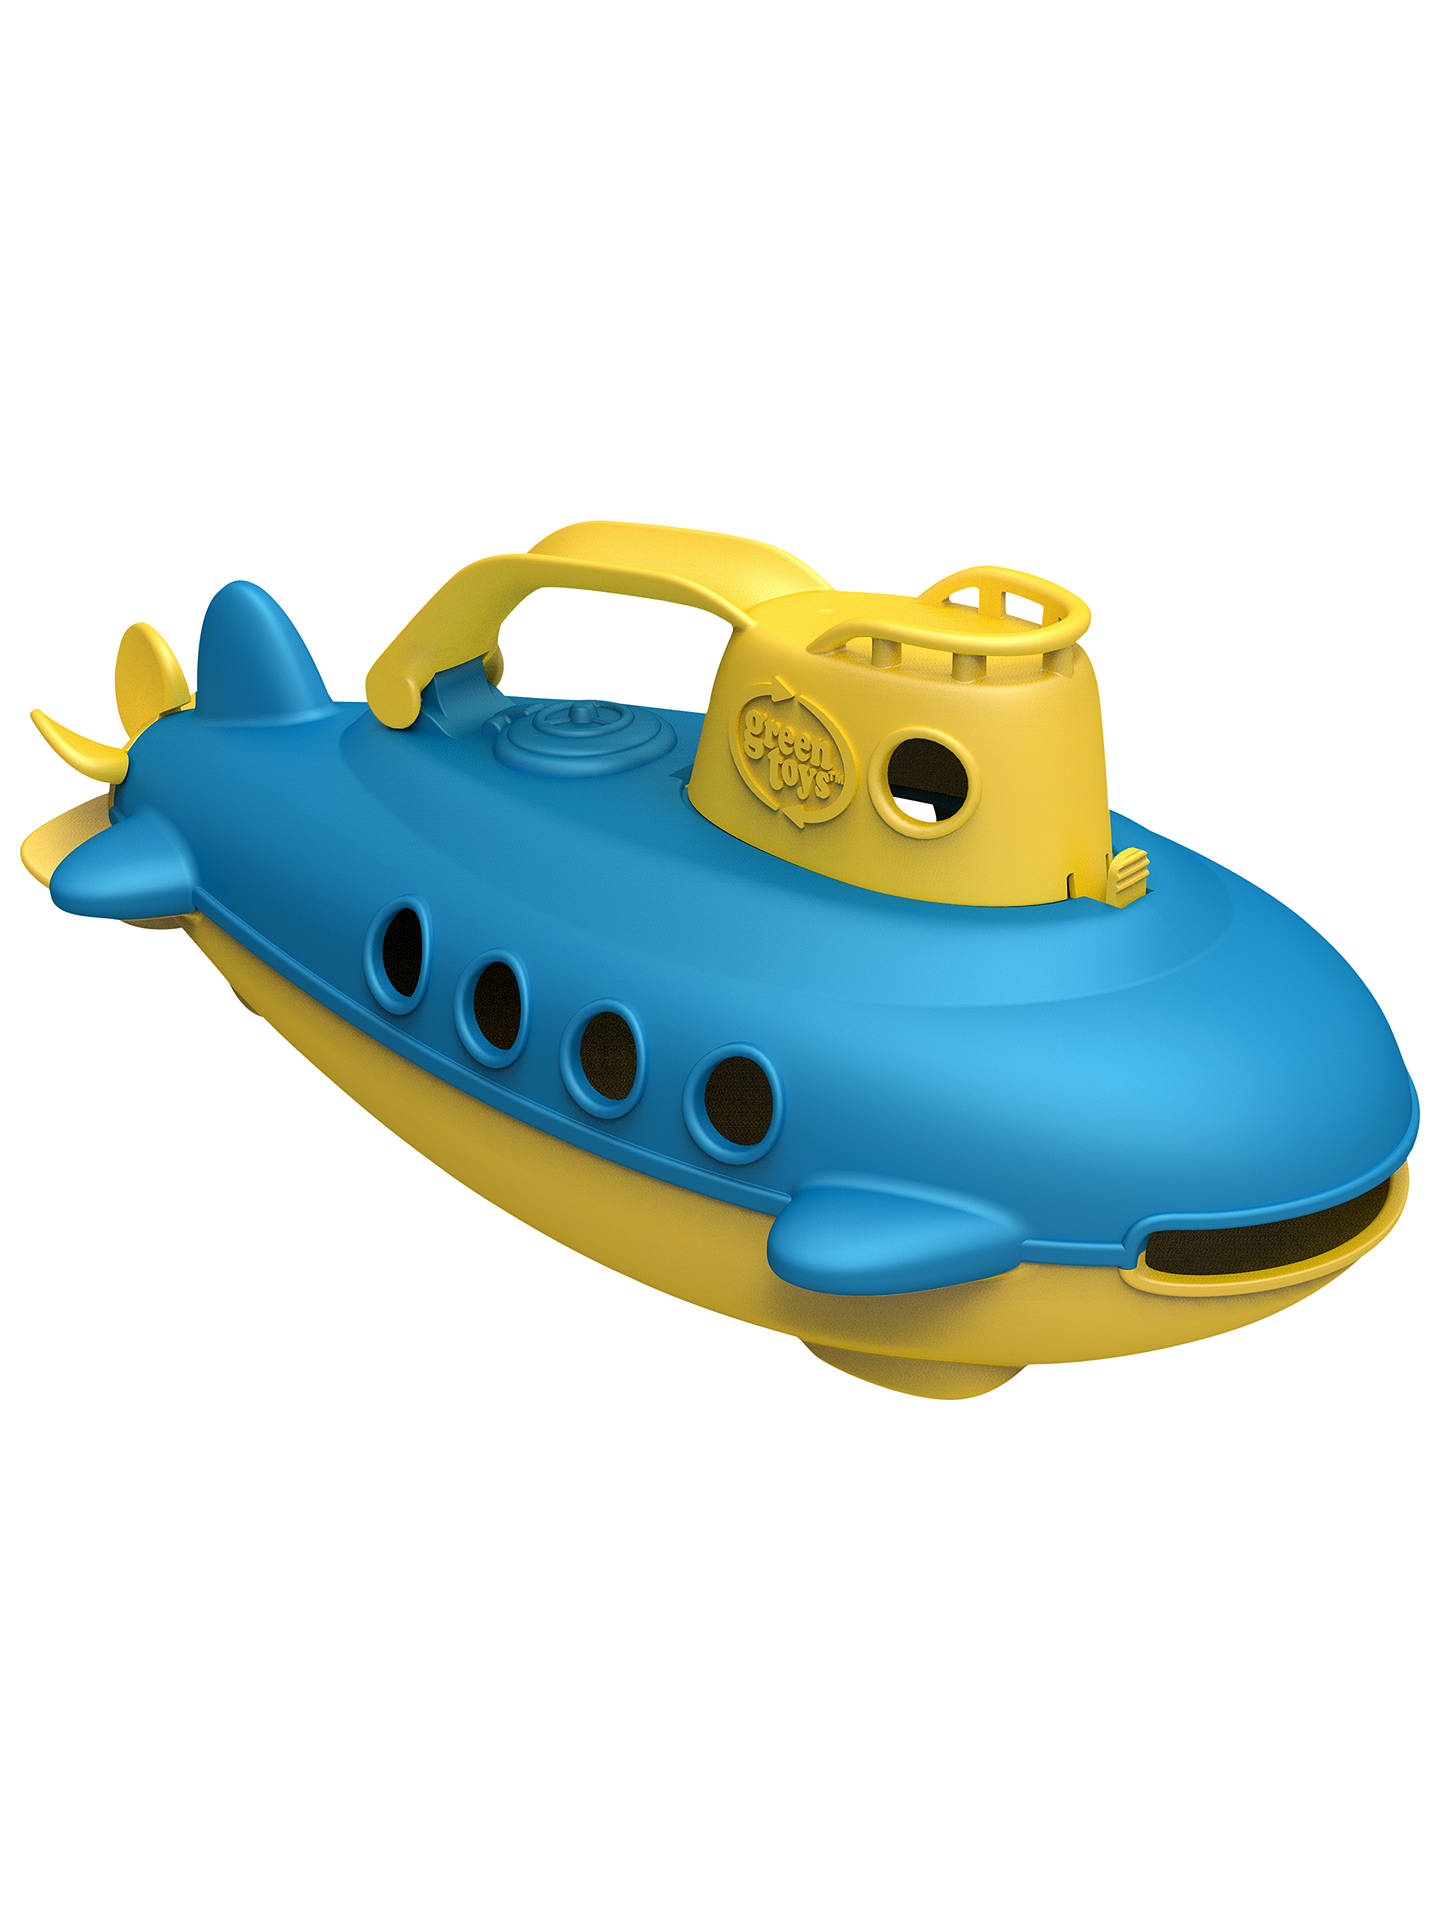 Buy Green Toys Submarine, Assorted Online at johnlewis.com